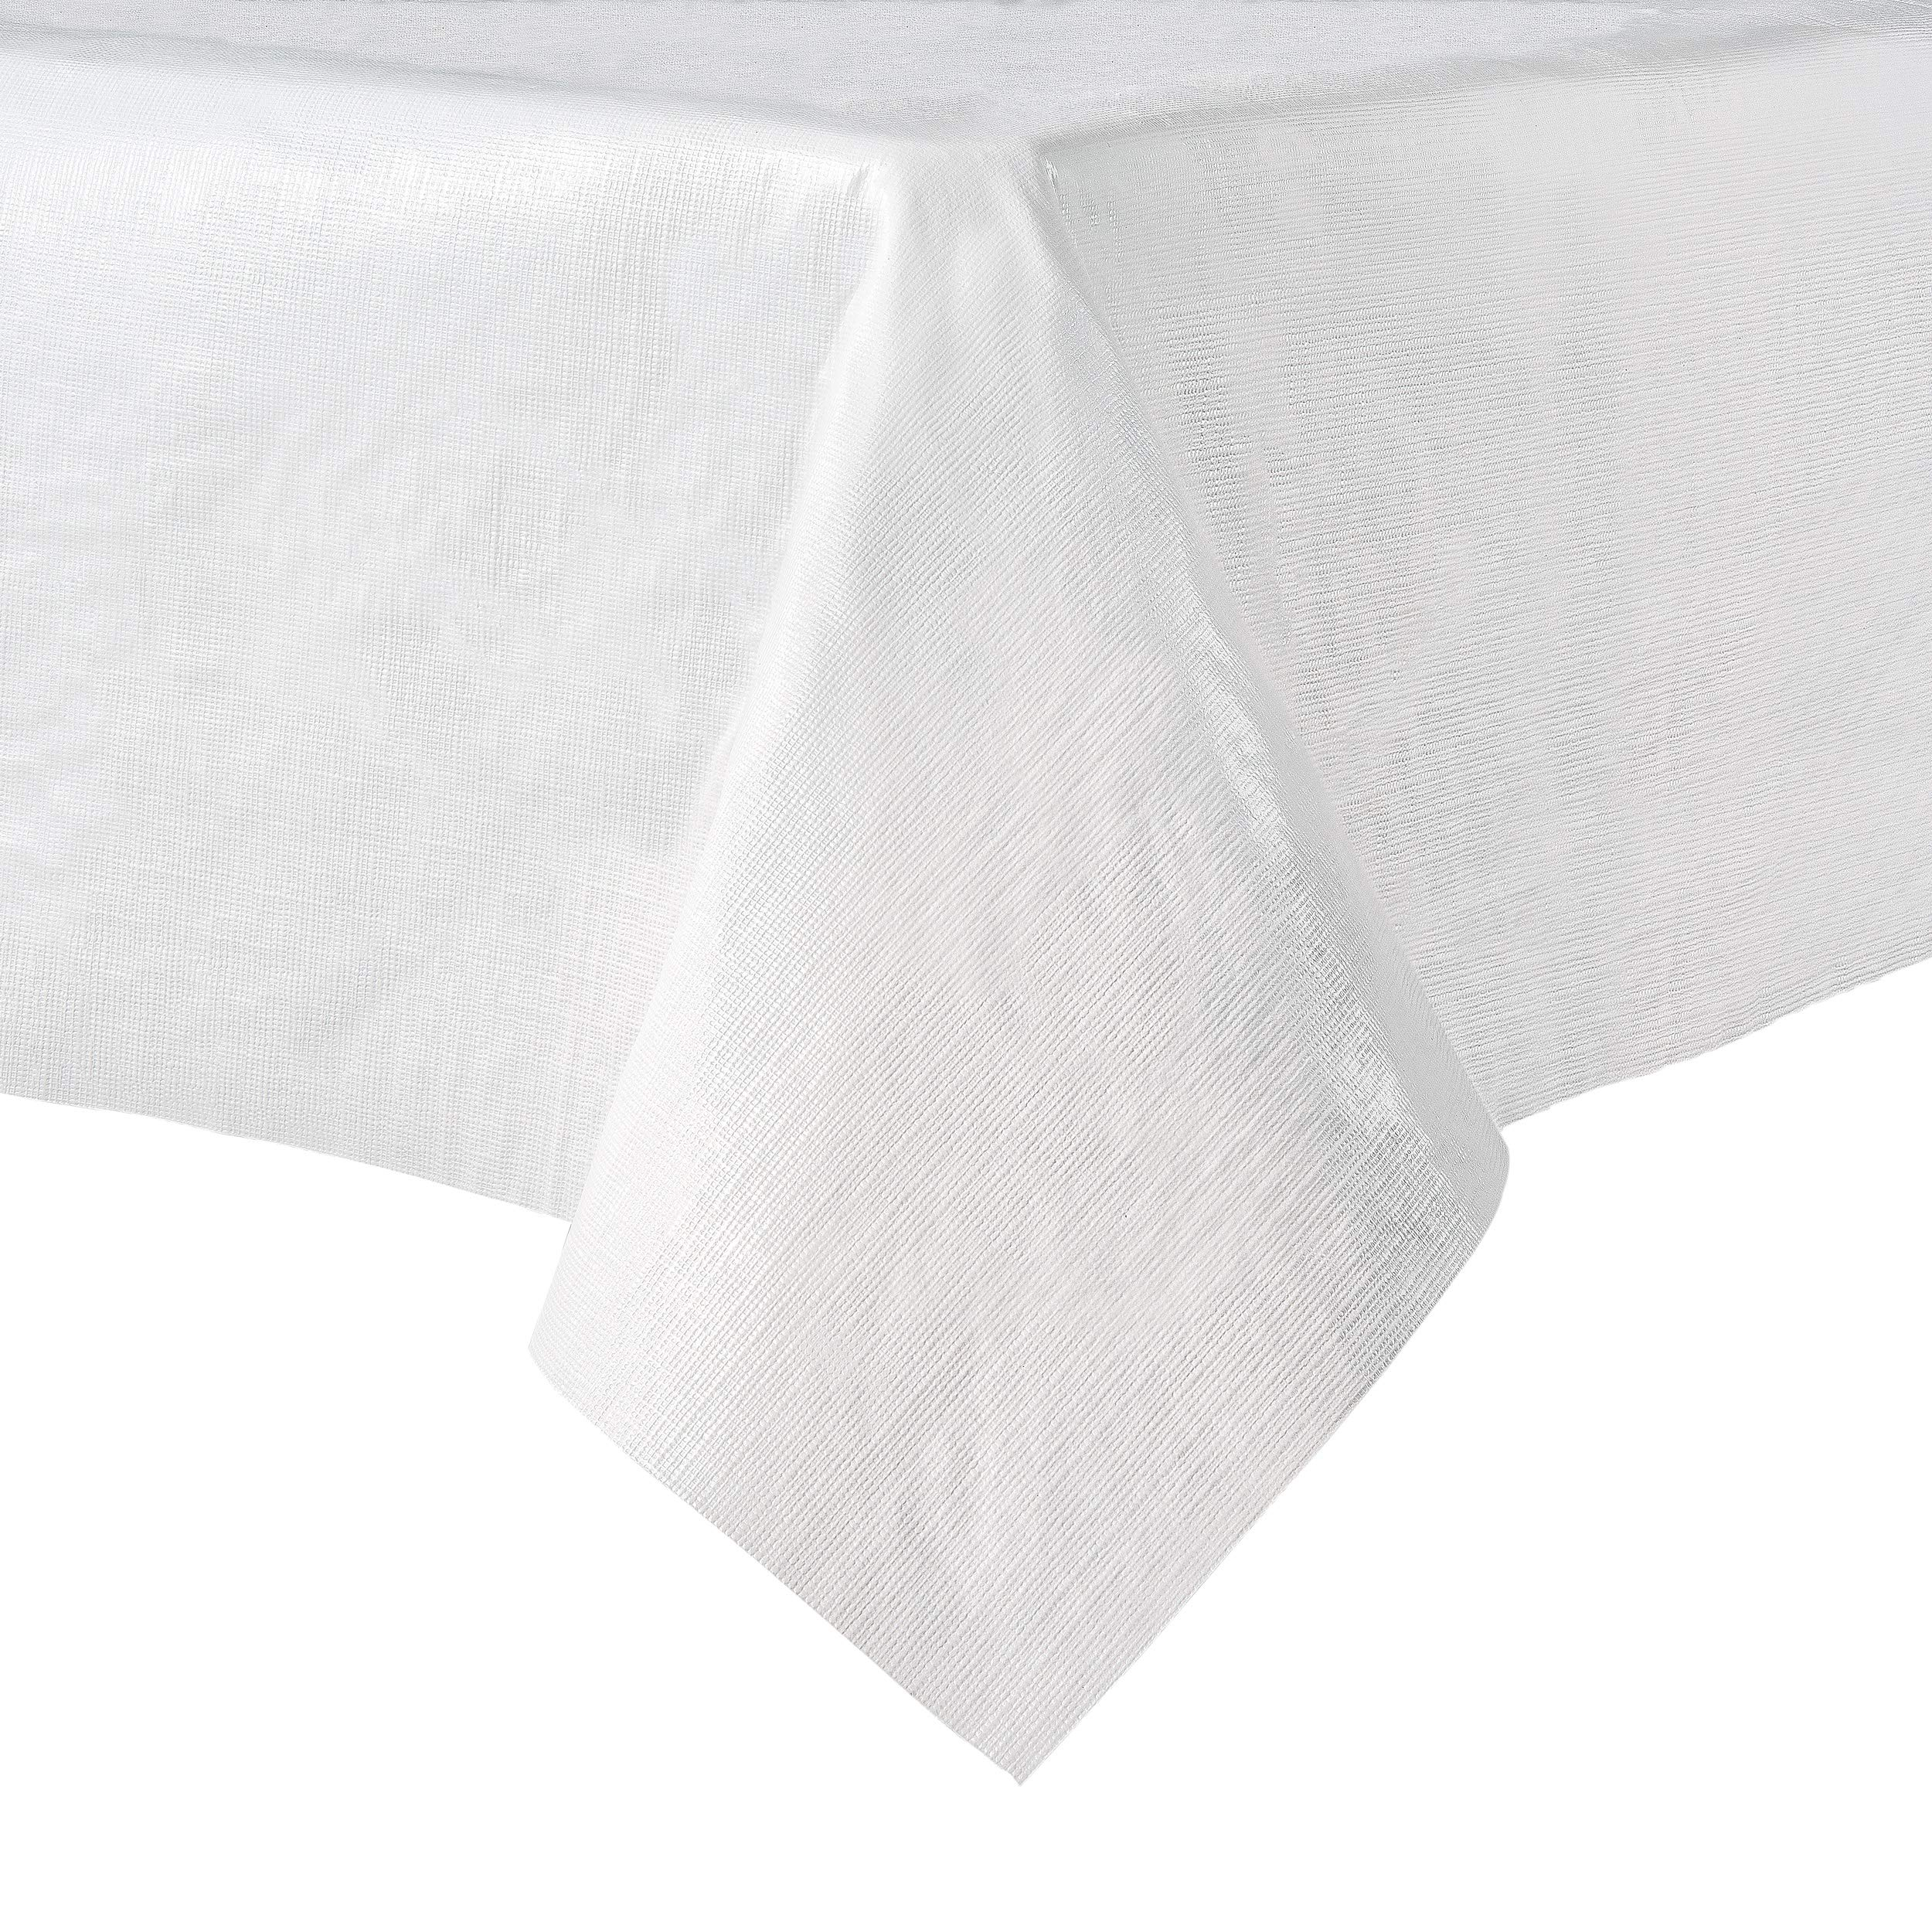 Sultan's Linens Extra Padding Table Pad Waterproof with Superior Protection (52 Inch x 144 Inch) by Sultan's Linens